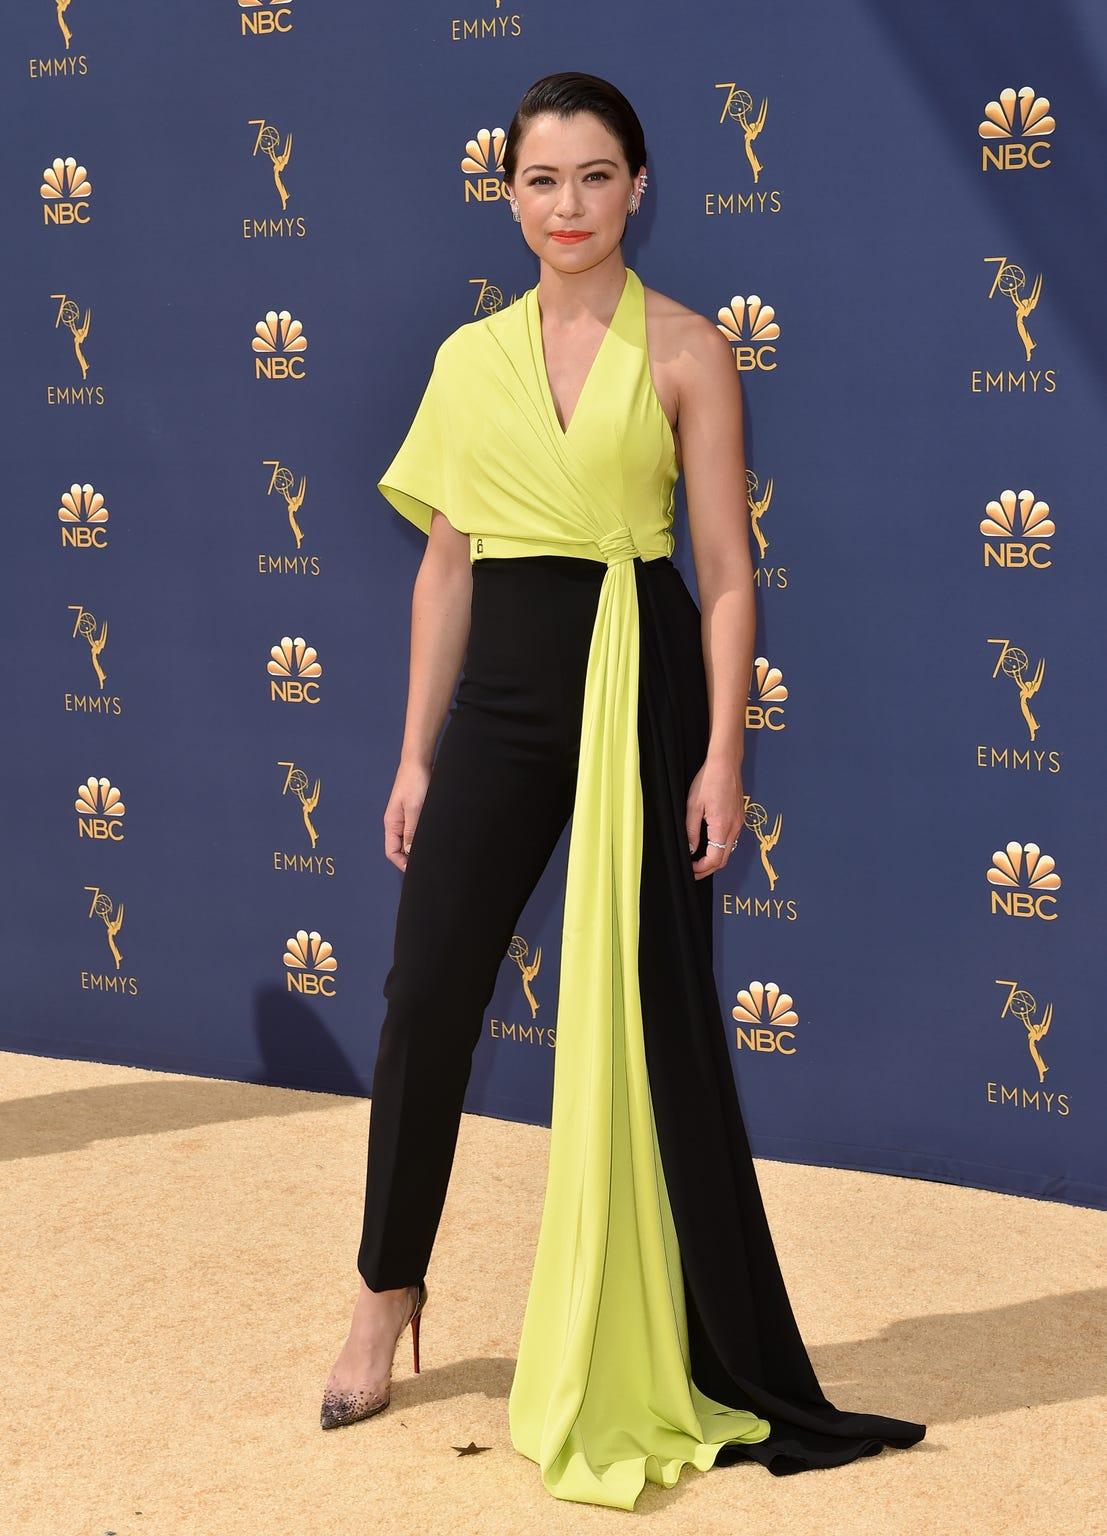 Tatiana Maslany attended the Emmy Awards on September 17, 2018.